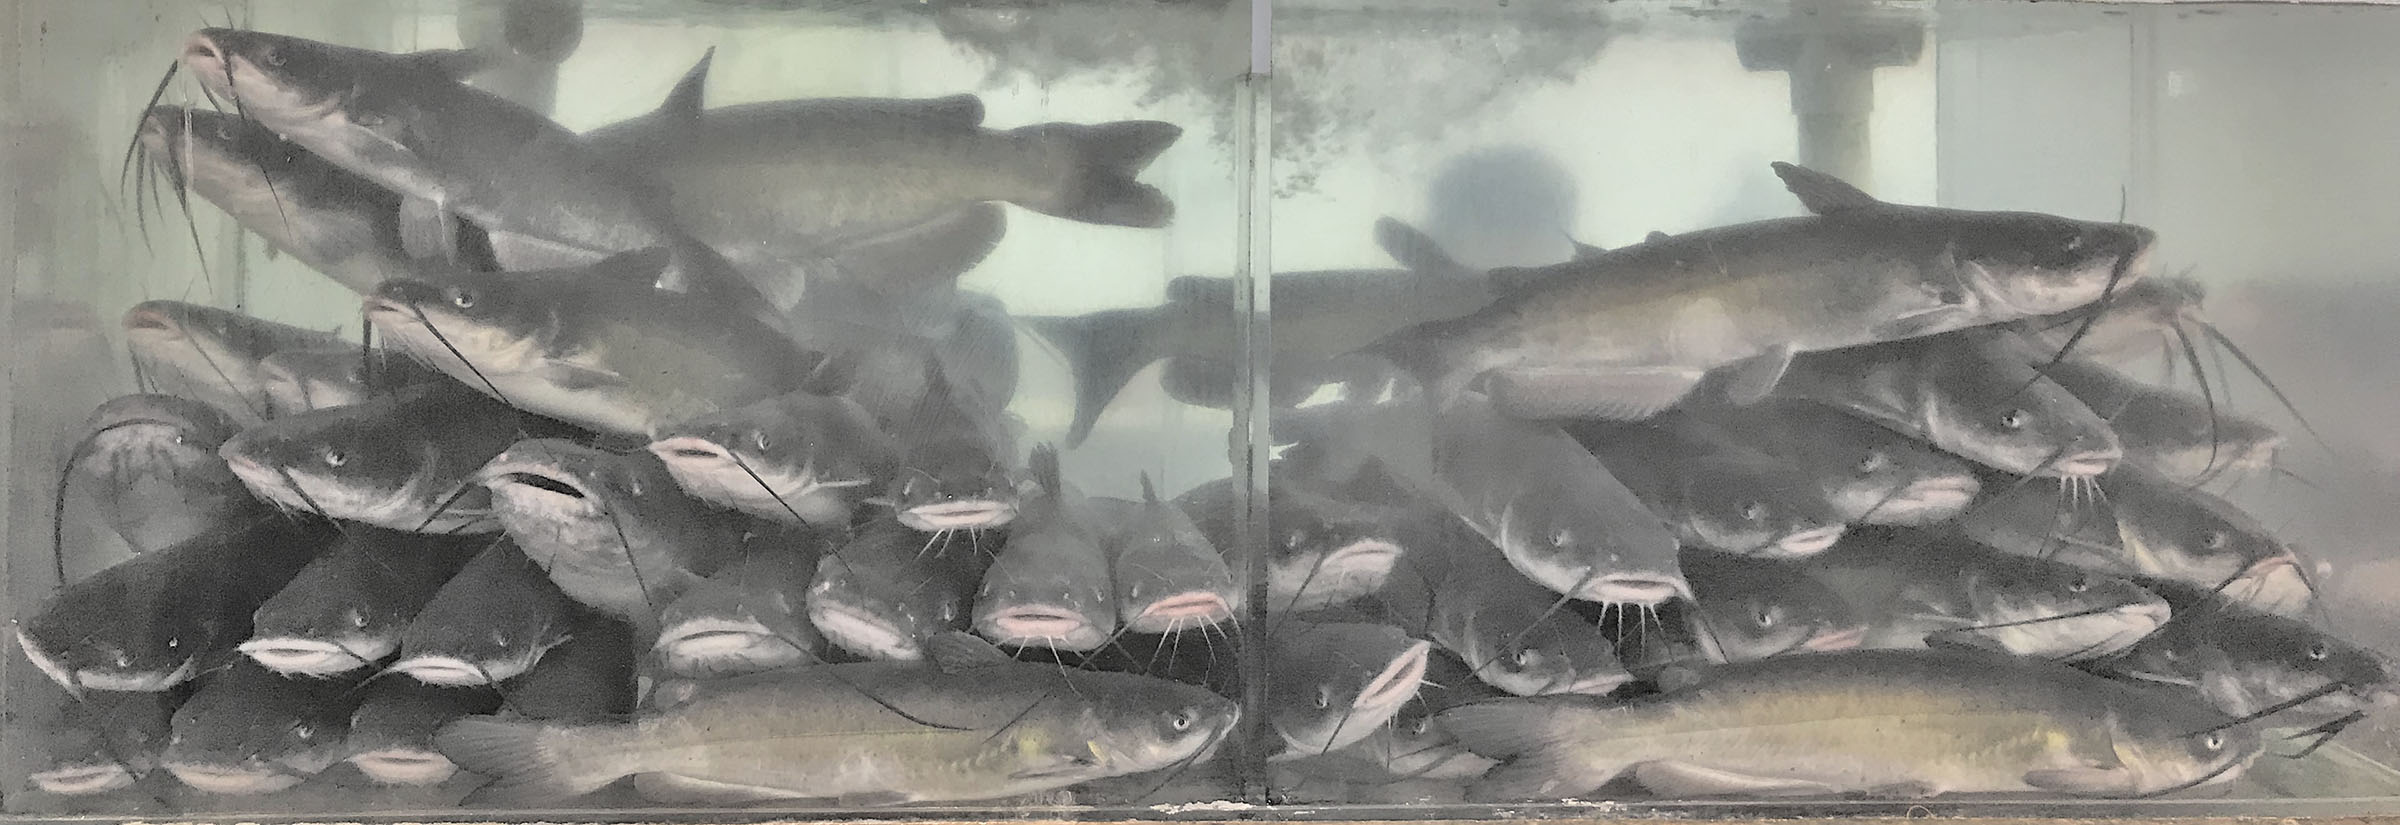 About The Farm – Imperial Catfish Farm